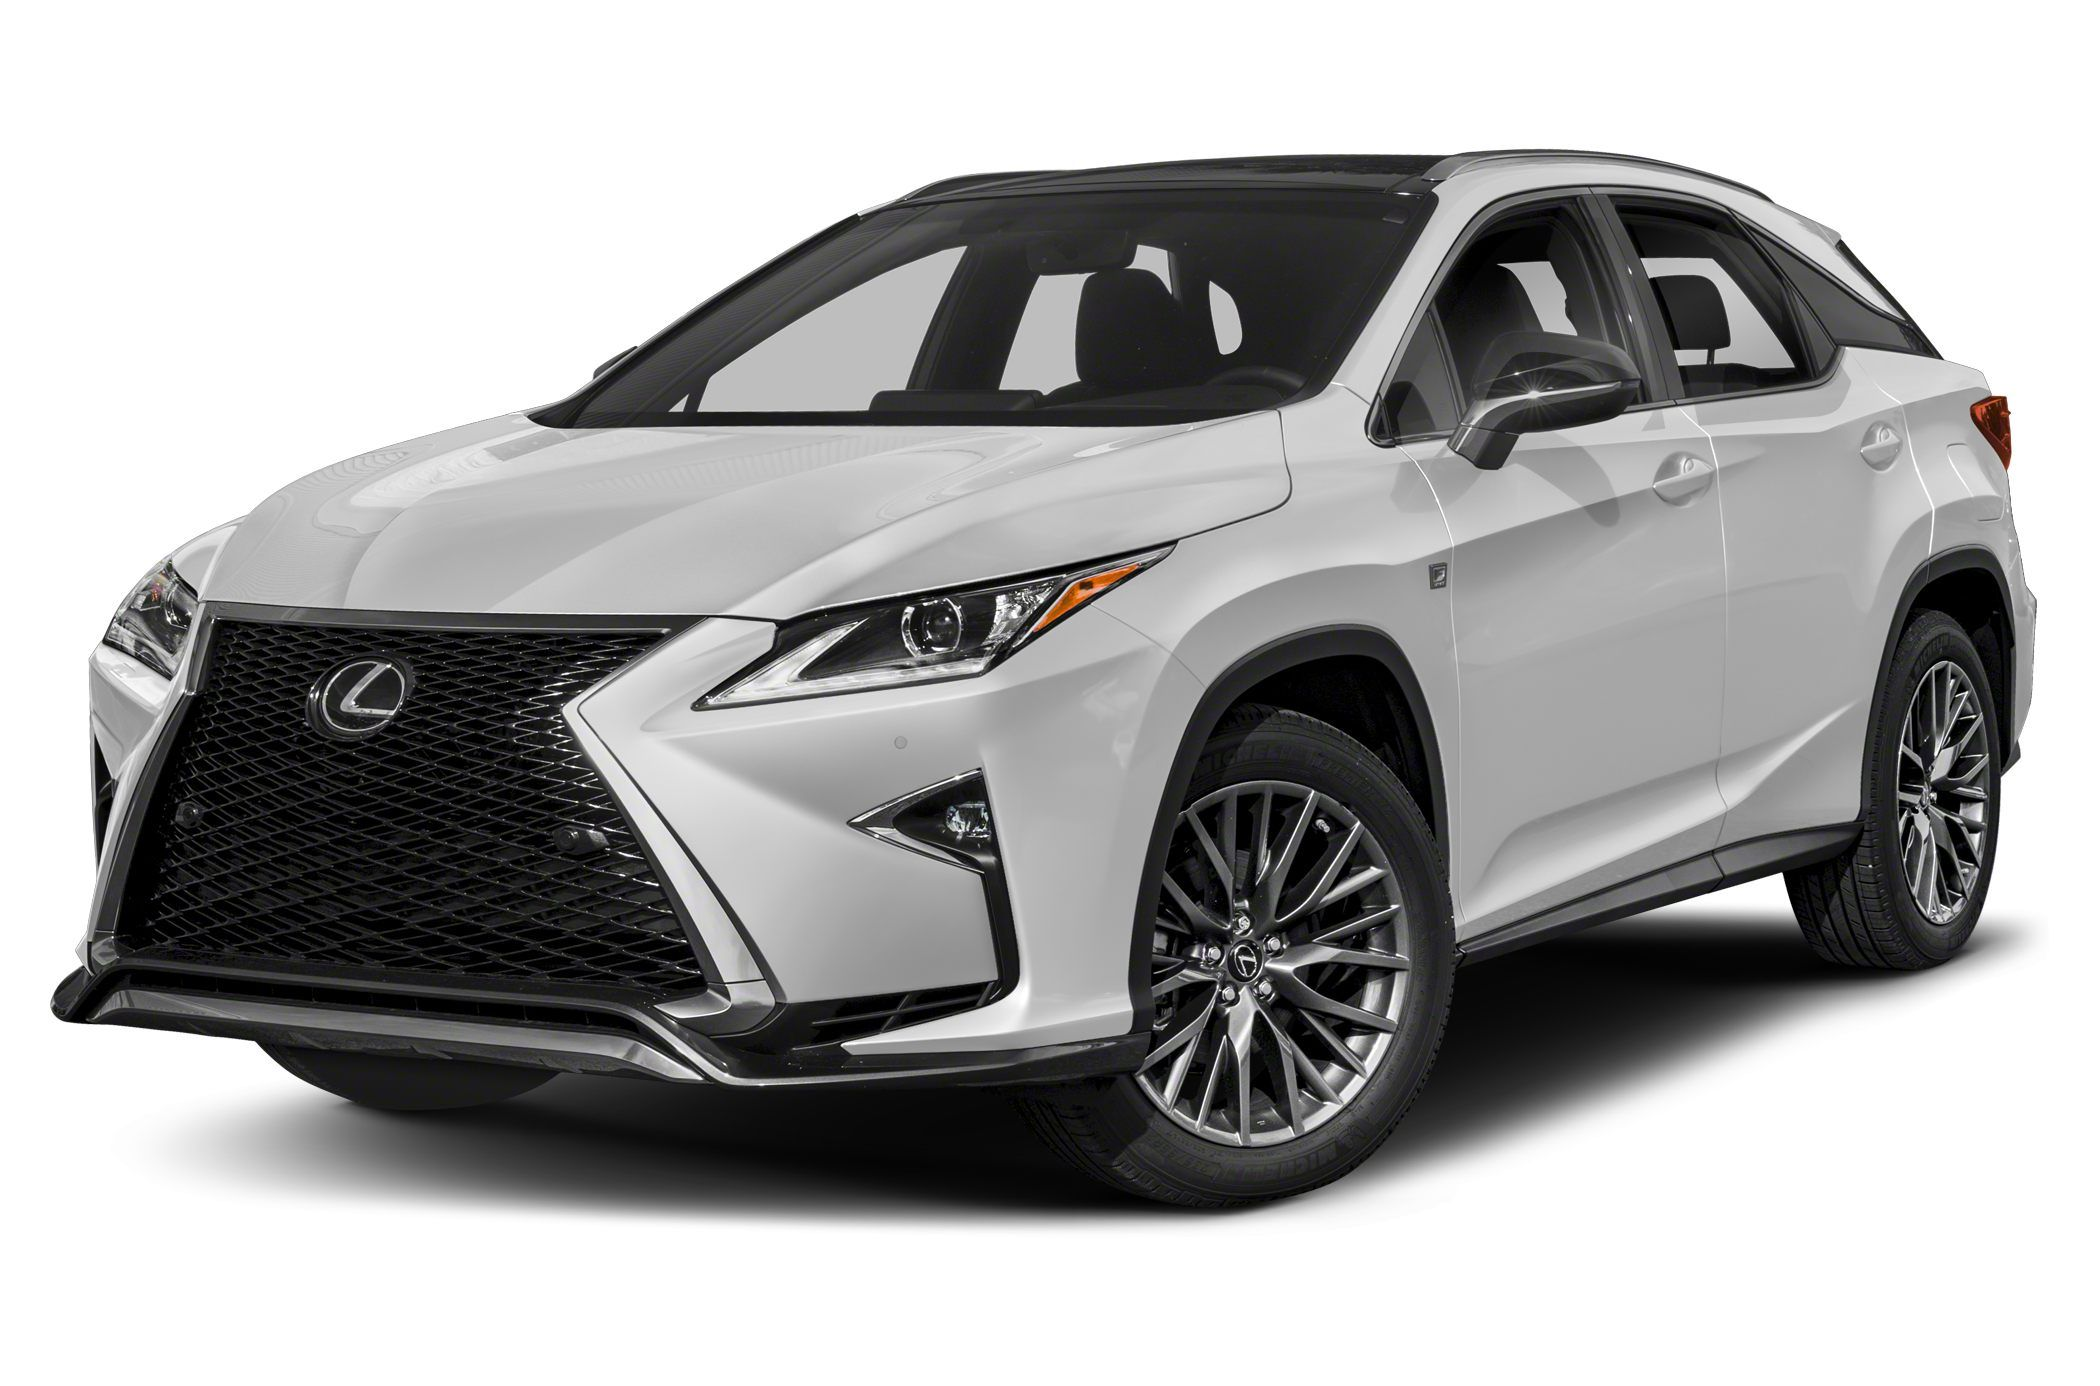 Review 2019 Lexus Rx 350 F Sport Awd And Images. Feels